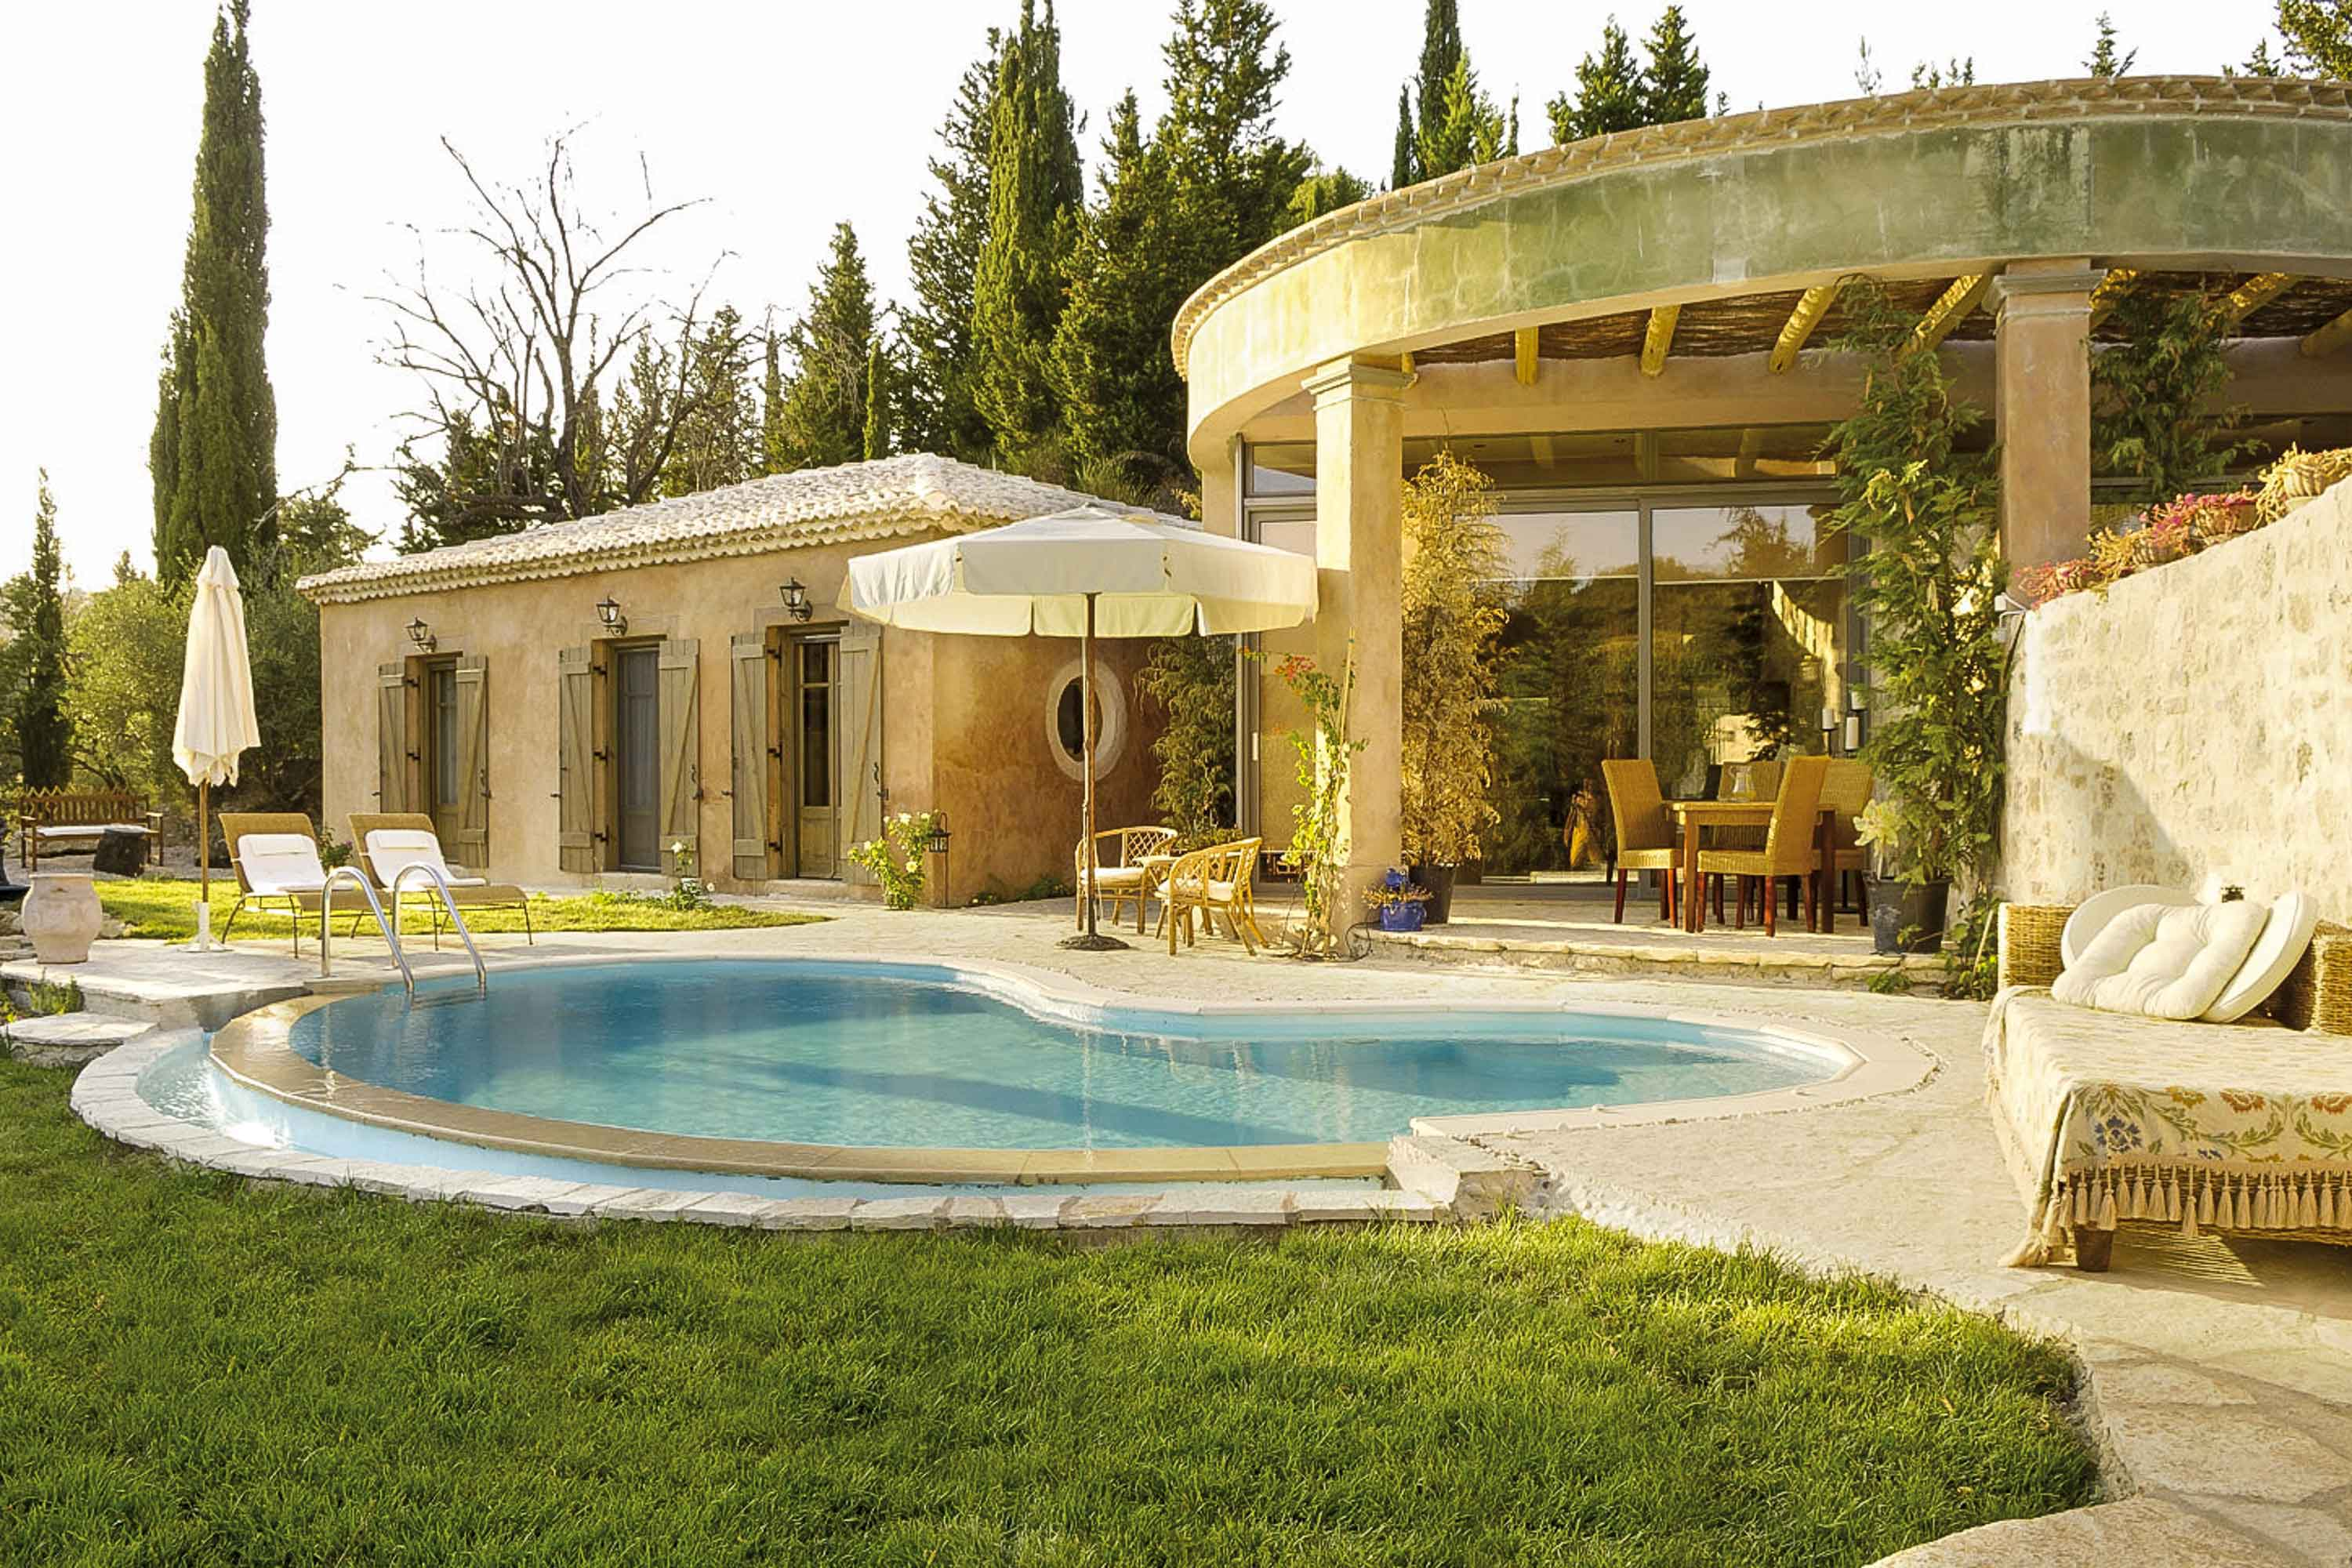 Villa Ermis in Lefkada - Luxury holidays in greece